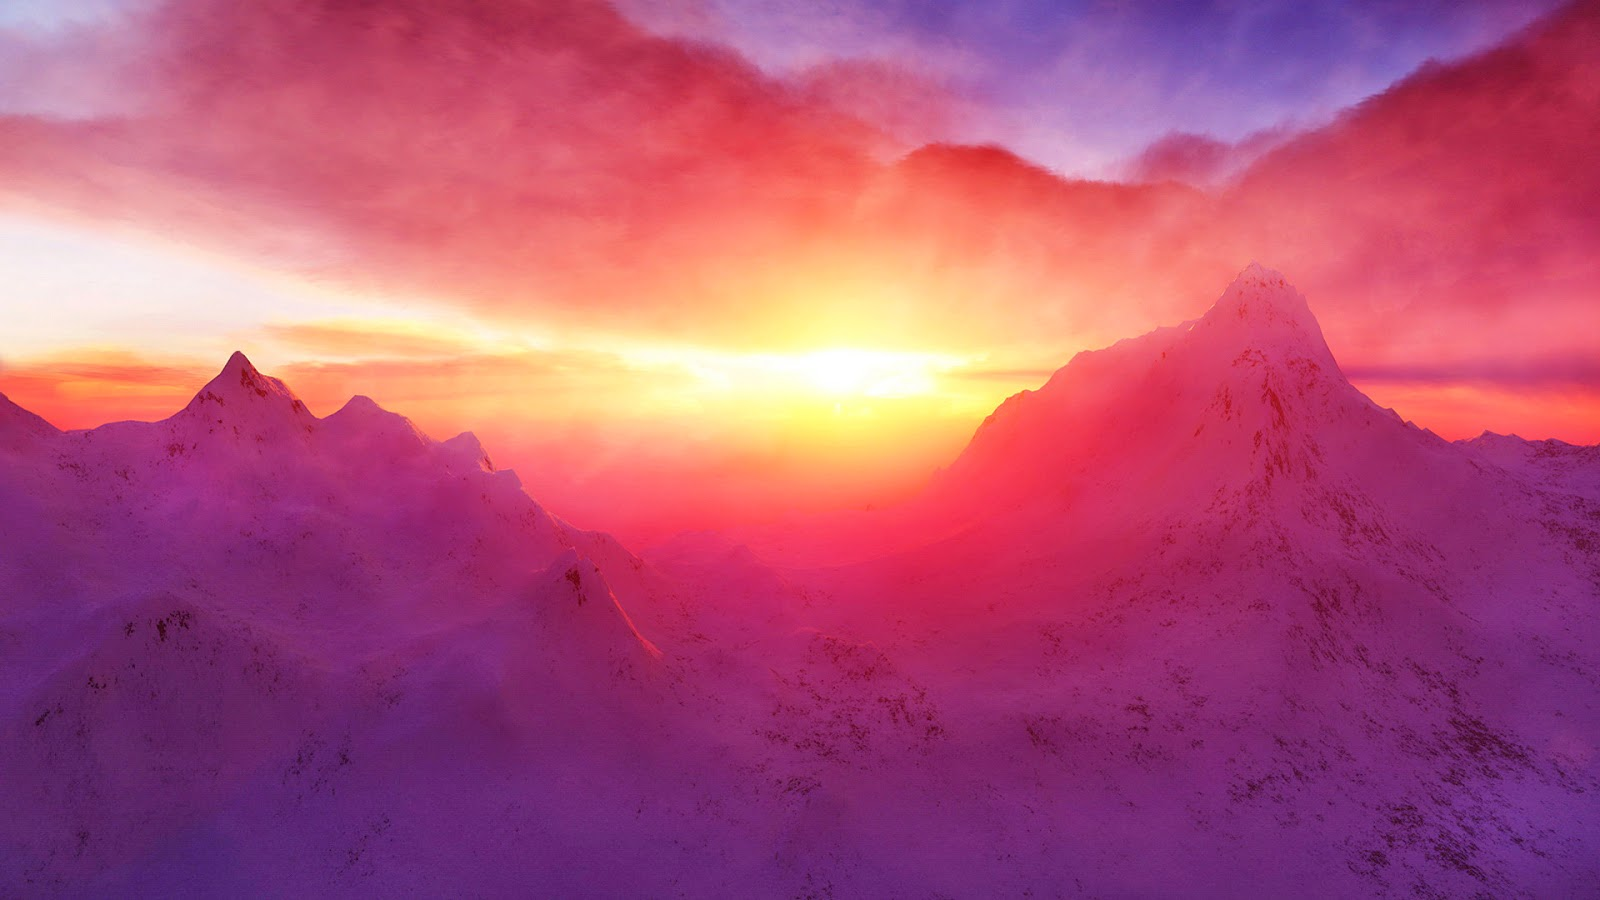 beautiful nature images and wallpapers: snow mountain sunset